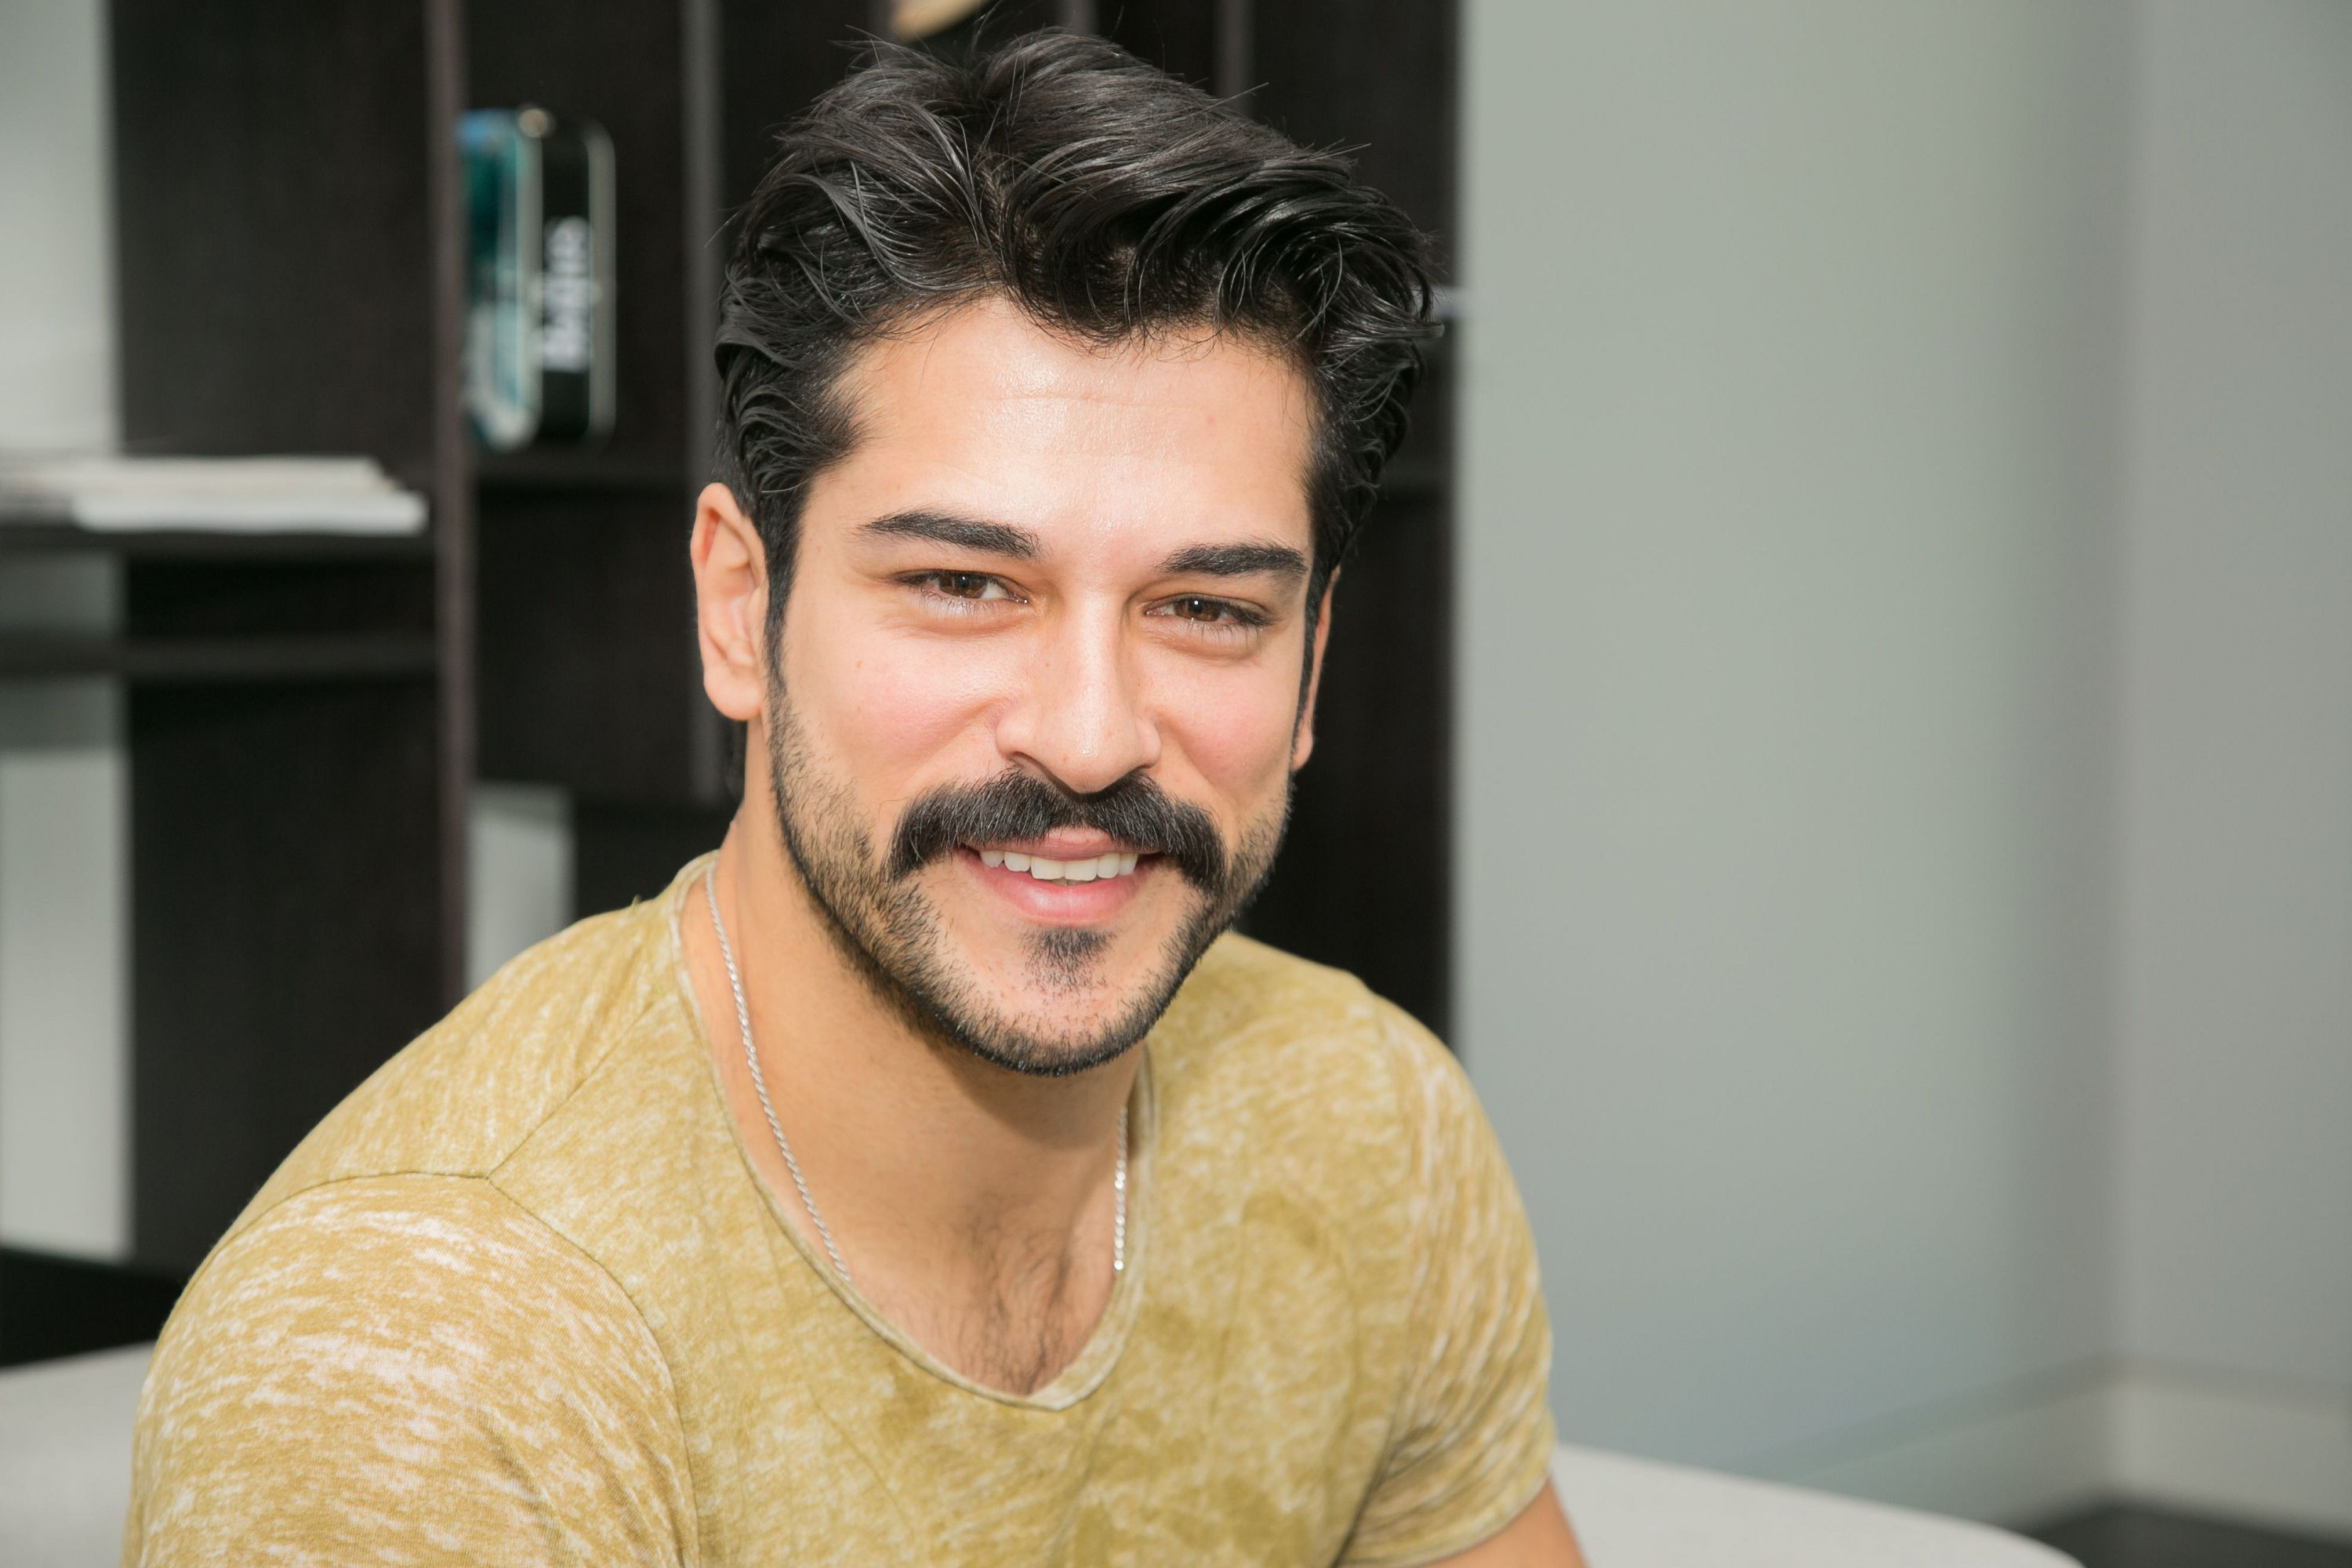 Burak Ozcivit (Burak Özçivit) Bio, Height, Age, Weight, Wife & Facts - Burak Ozcivit Wallpapers HD